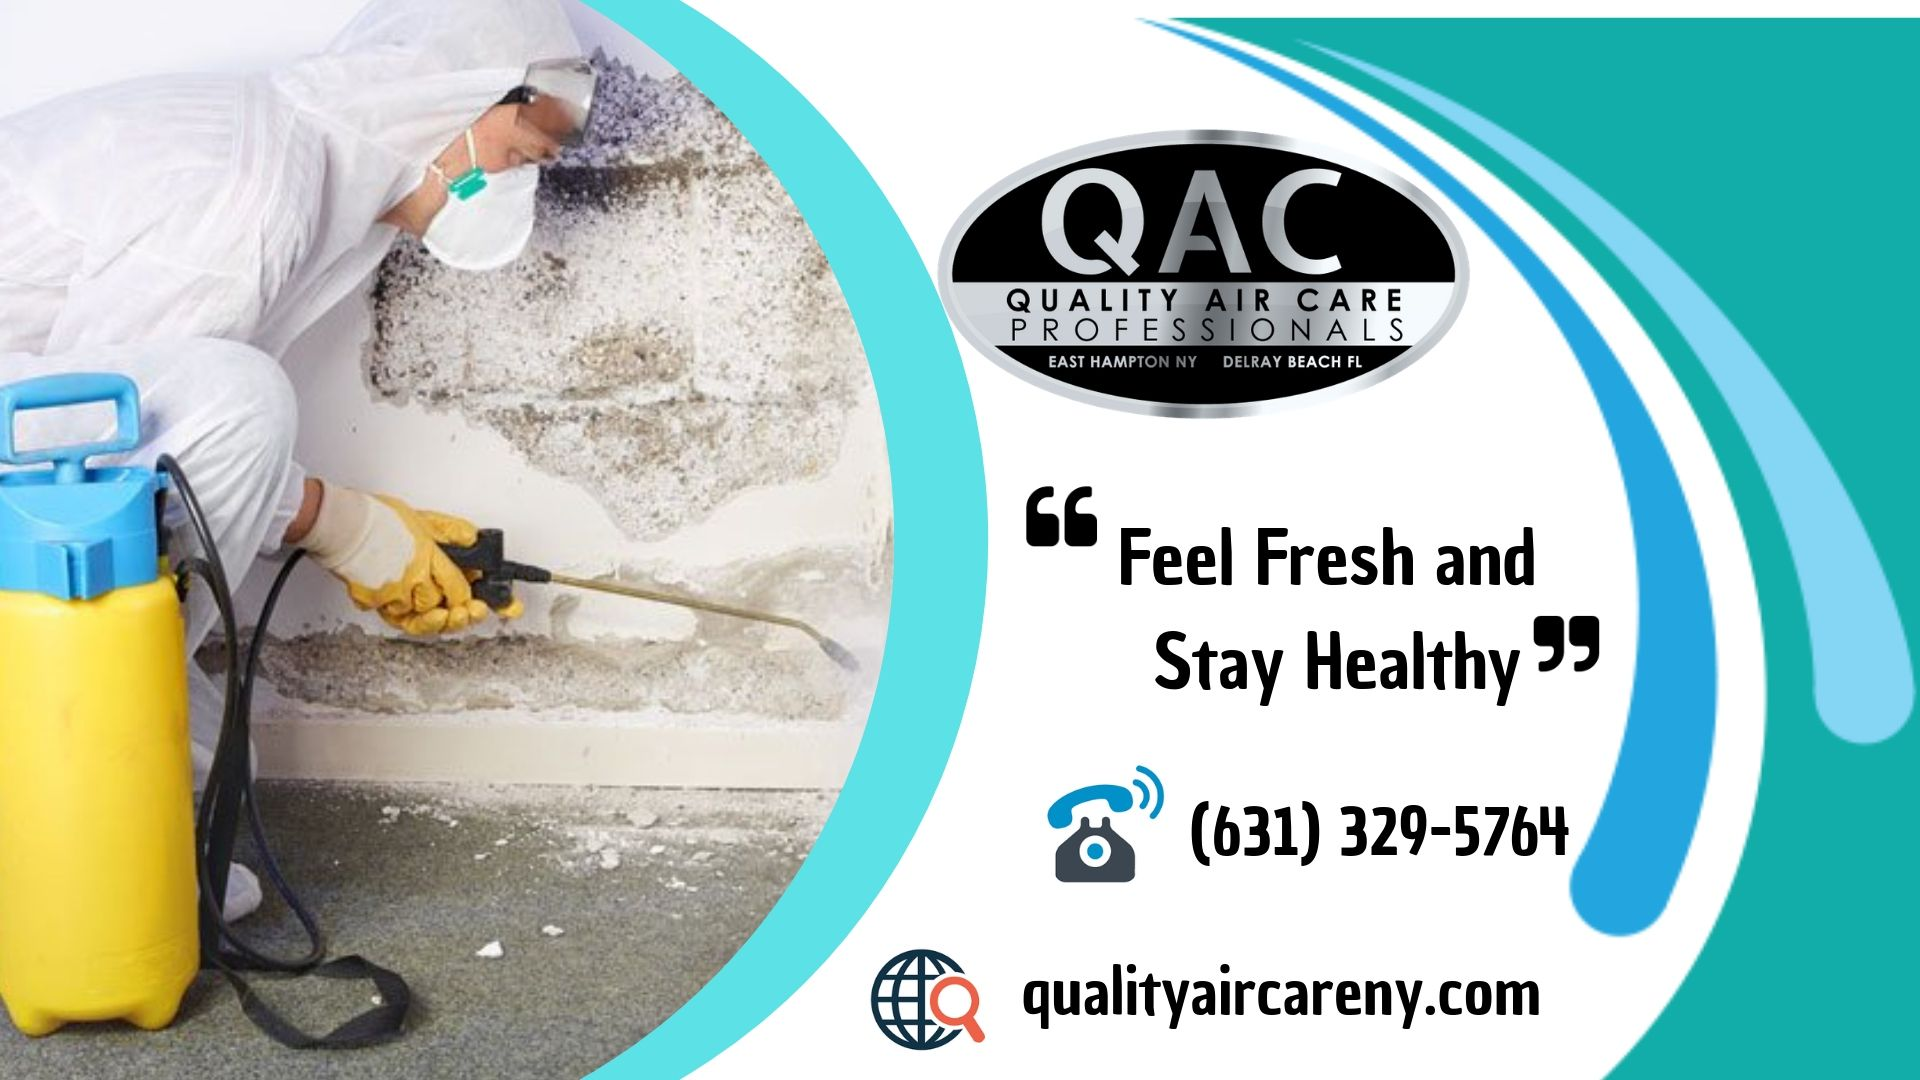 QUALITY AIR CARE is your professional East Hampton company